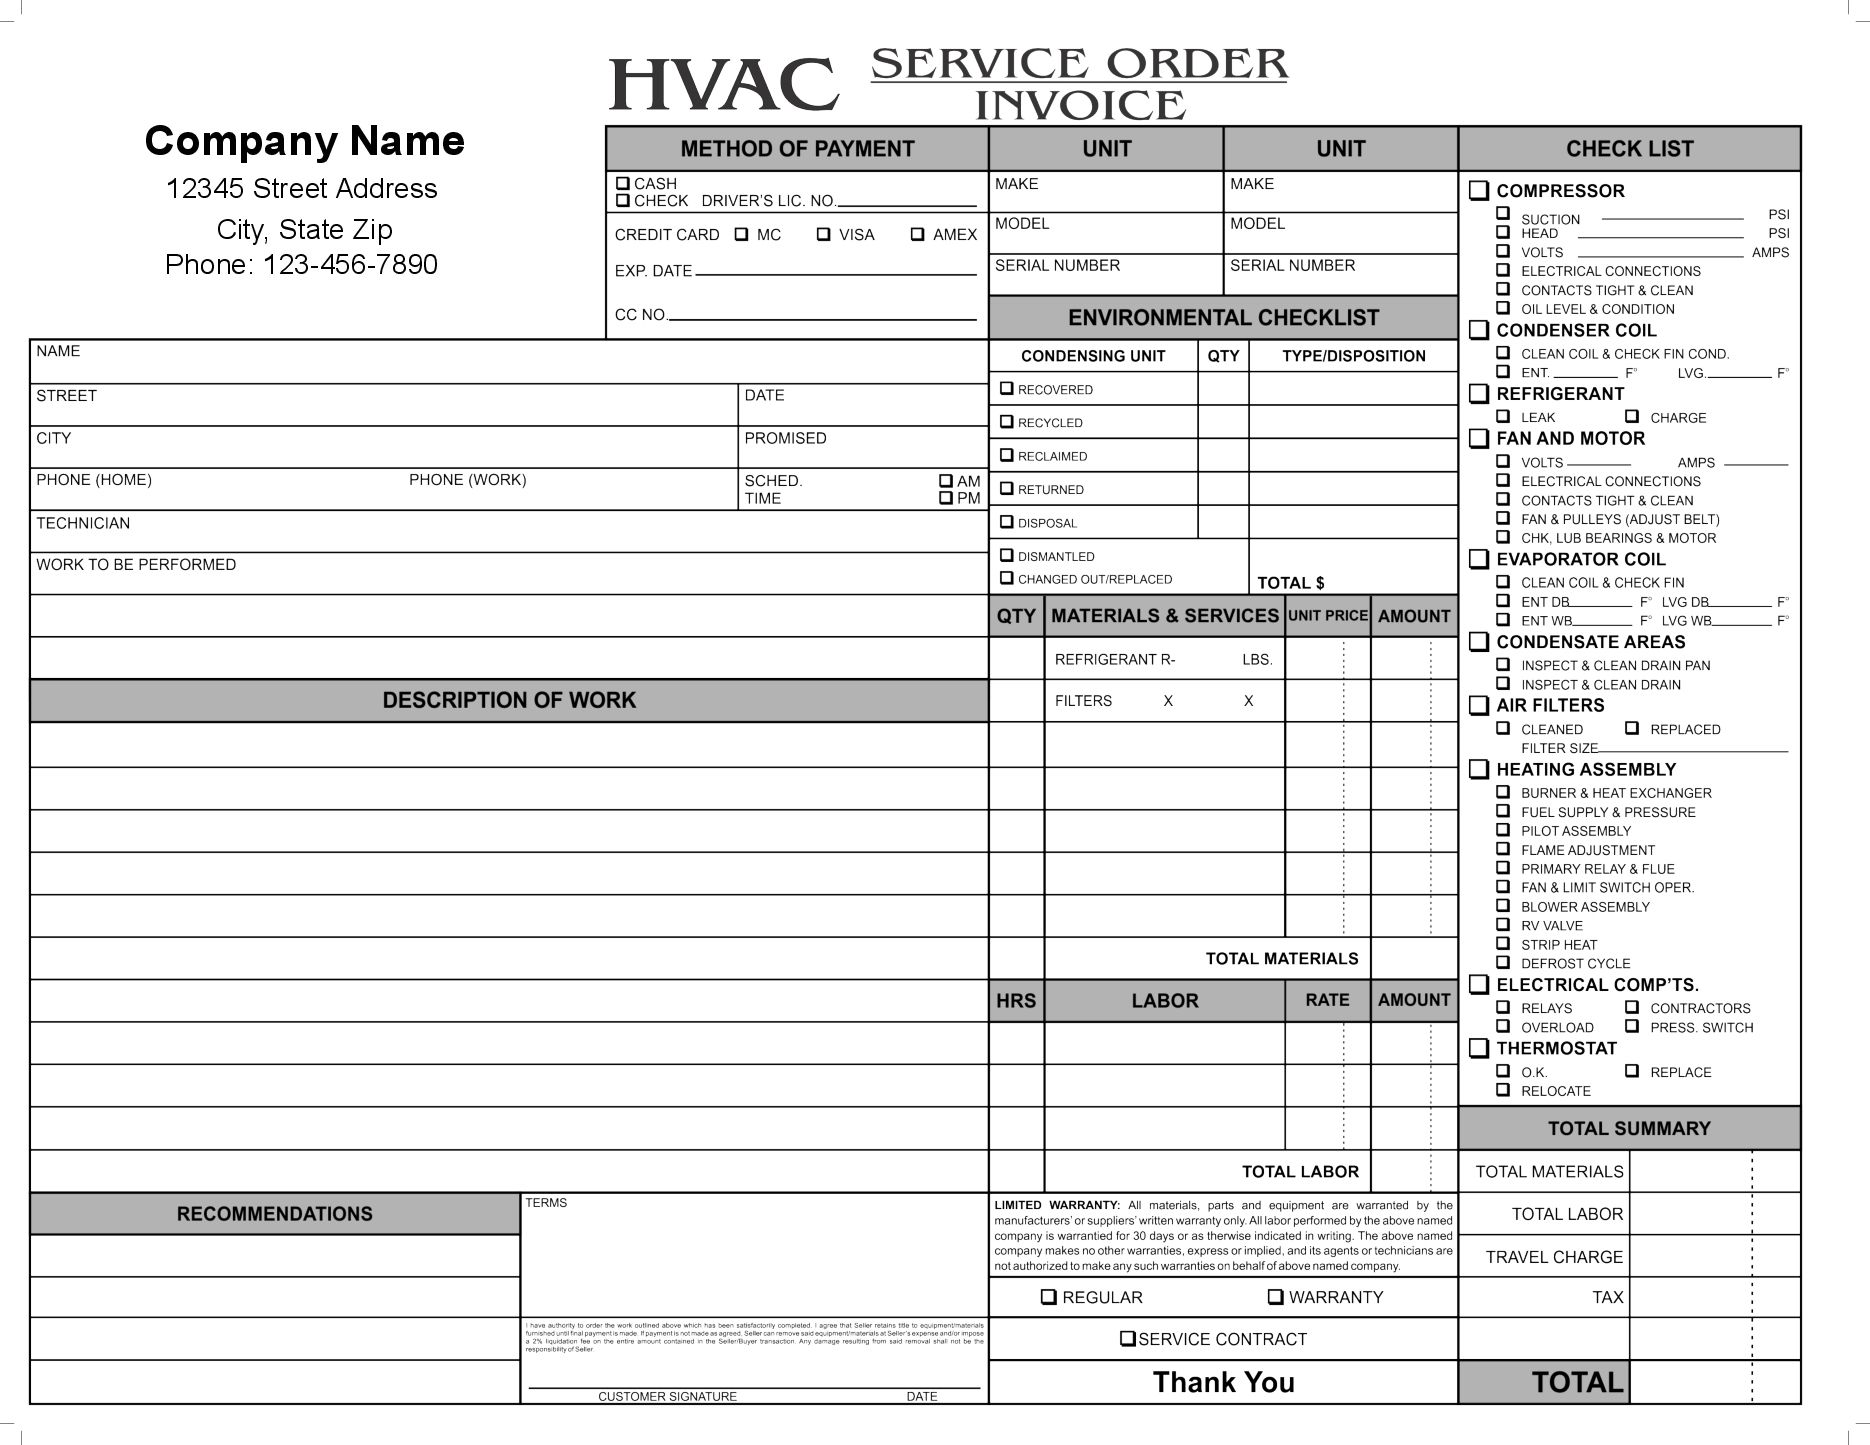 Hvac Invoice Template Free Top Invoice Templates Hvac Invoice - Free printable hvac invoice template for service business